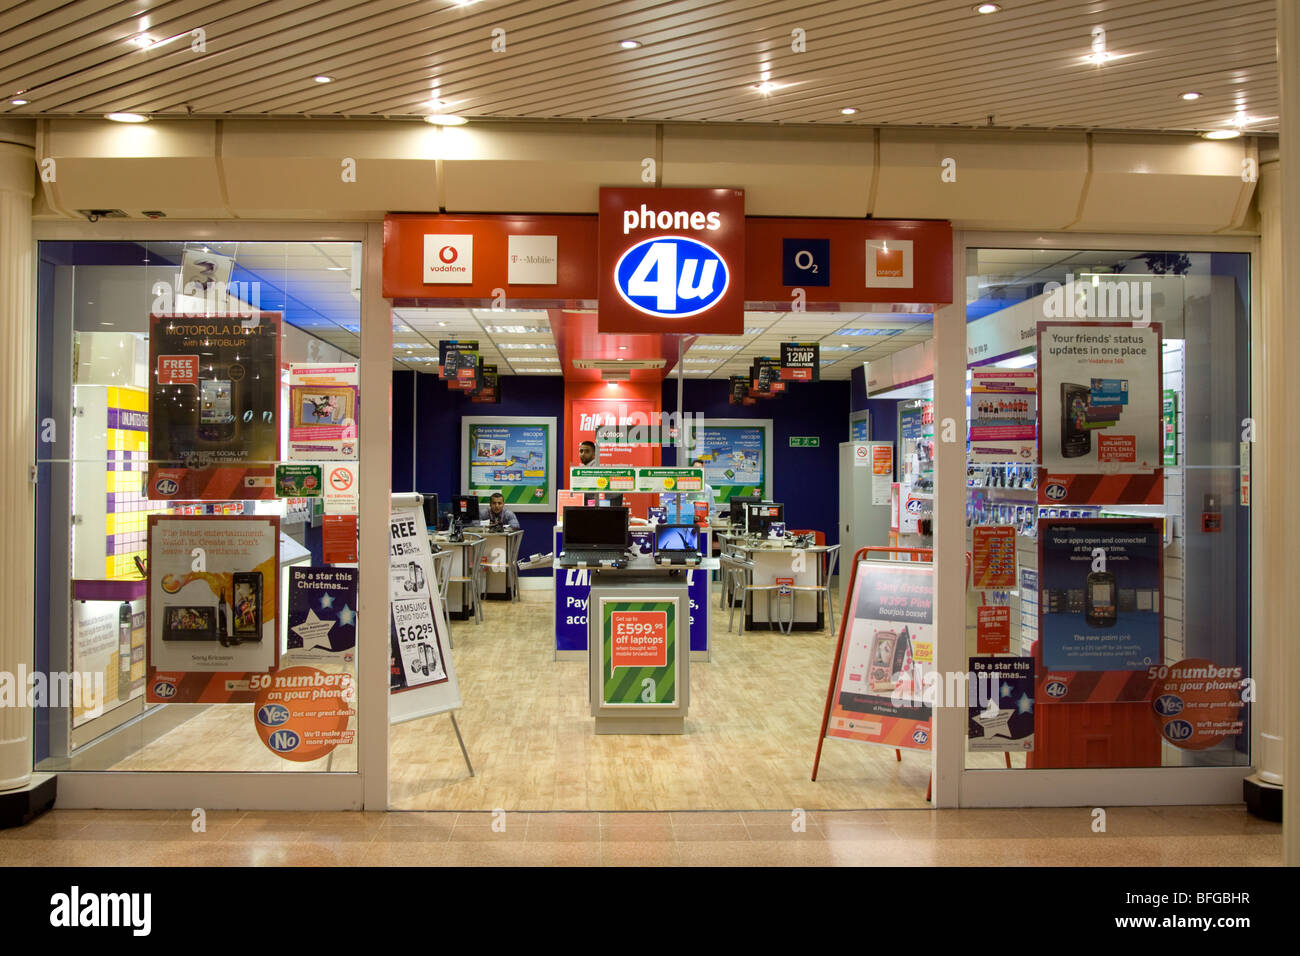 Phones 4u mobile phone store - Aylesbury - Buckinghamshire - Stock Image